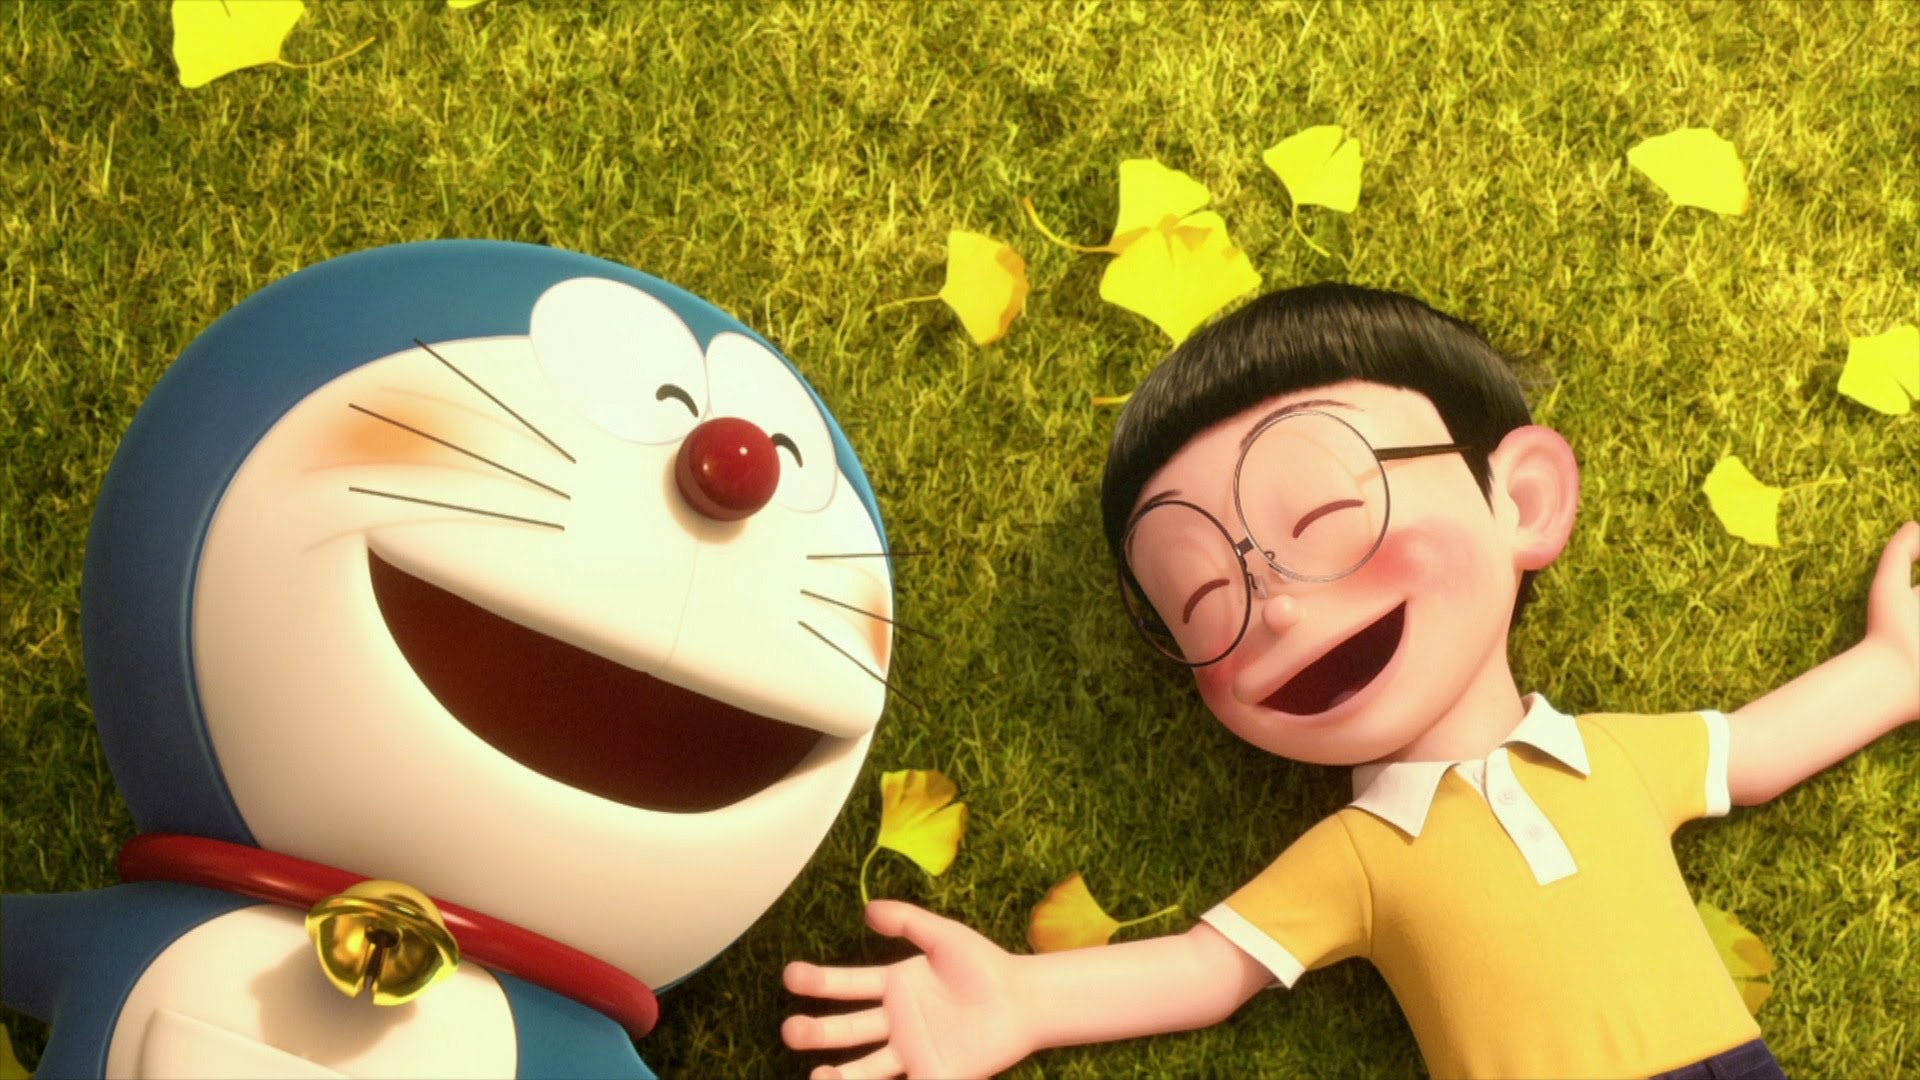 Stand by Me Doraemon' Review: Japan's Robot Cat Gets CG Upgrade - Variety